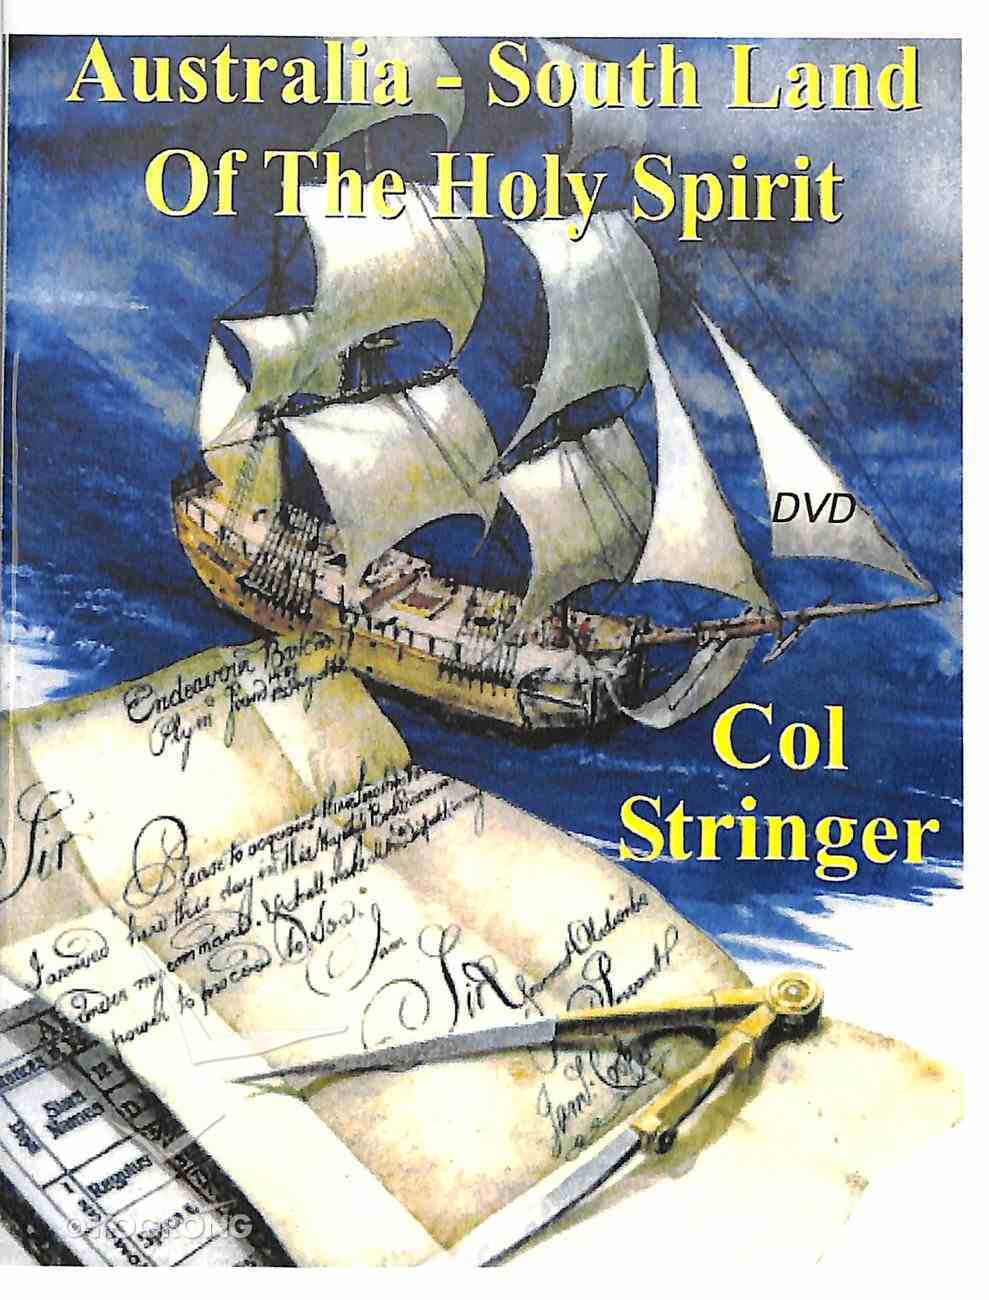 Australia - the Southland of the Holy Spirit DVD